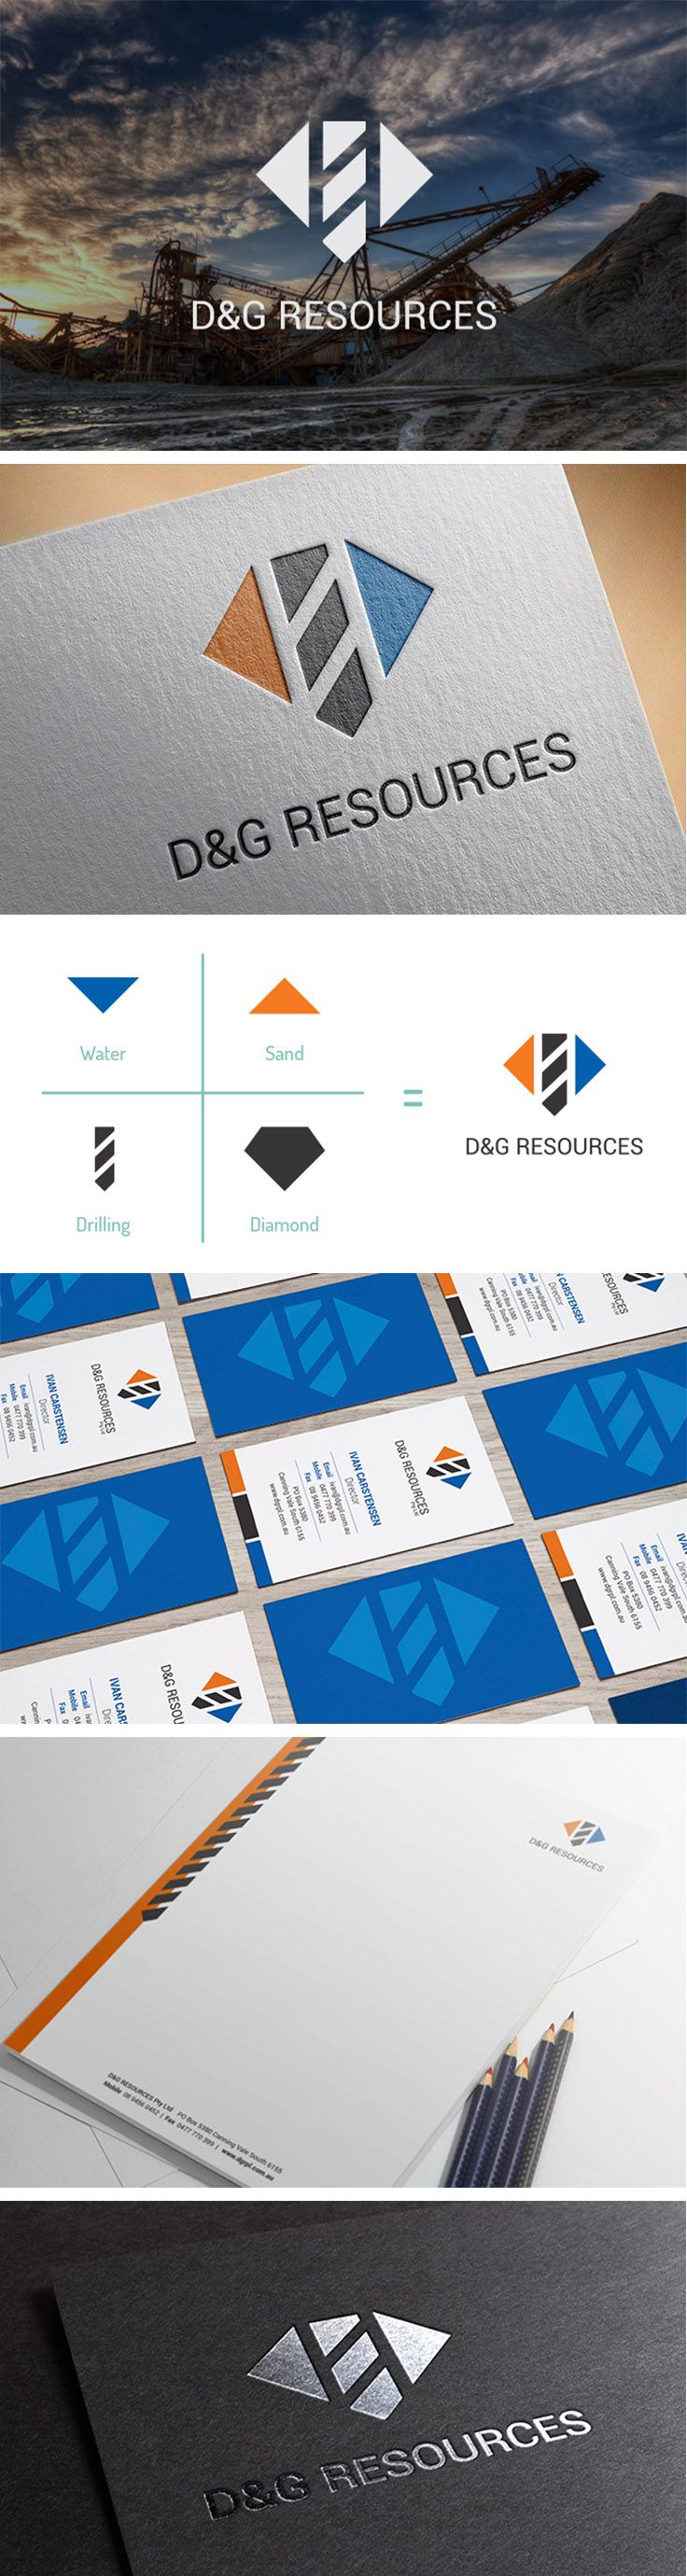 42 Impressive Logos amp Identity Design Projects  HOW Design